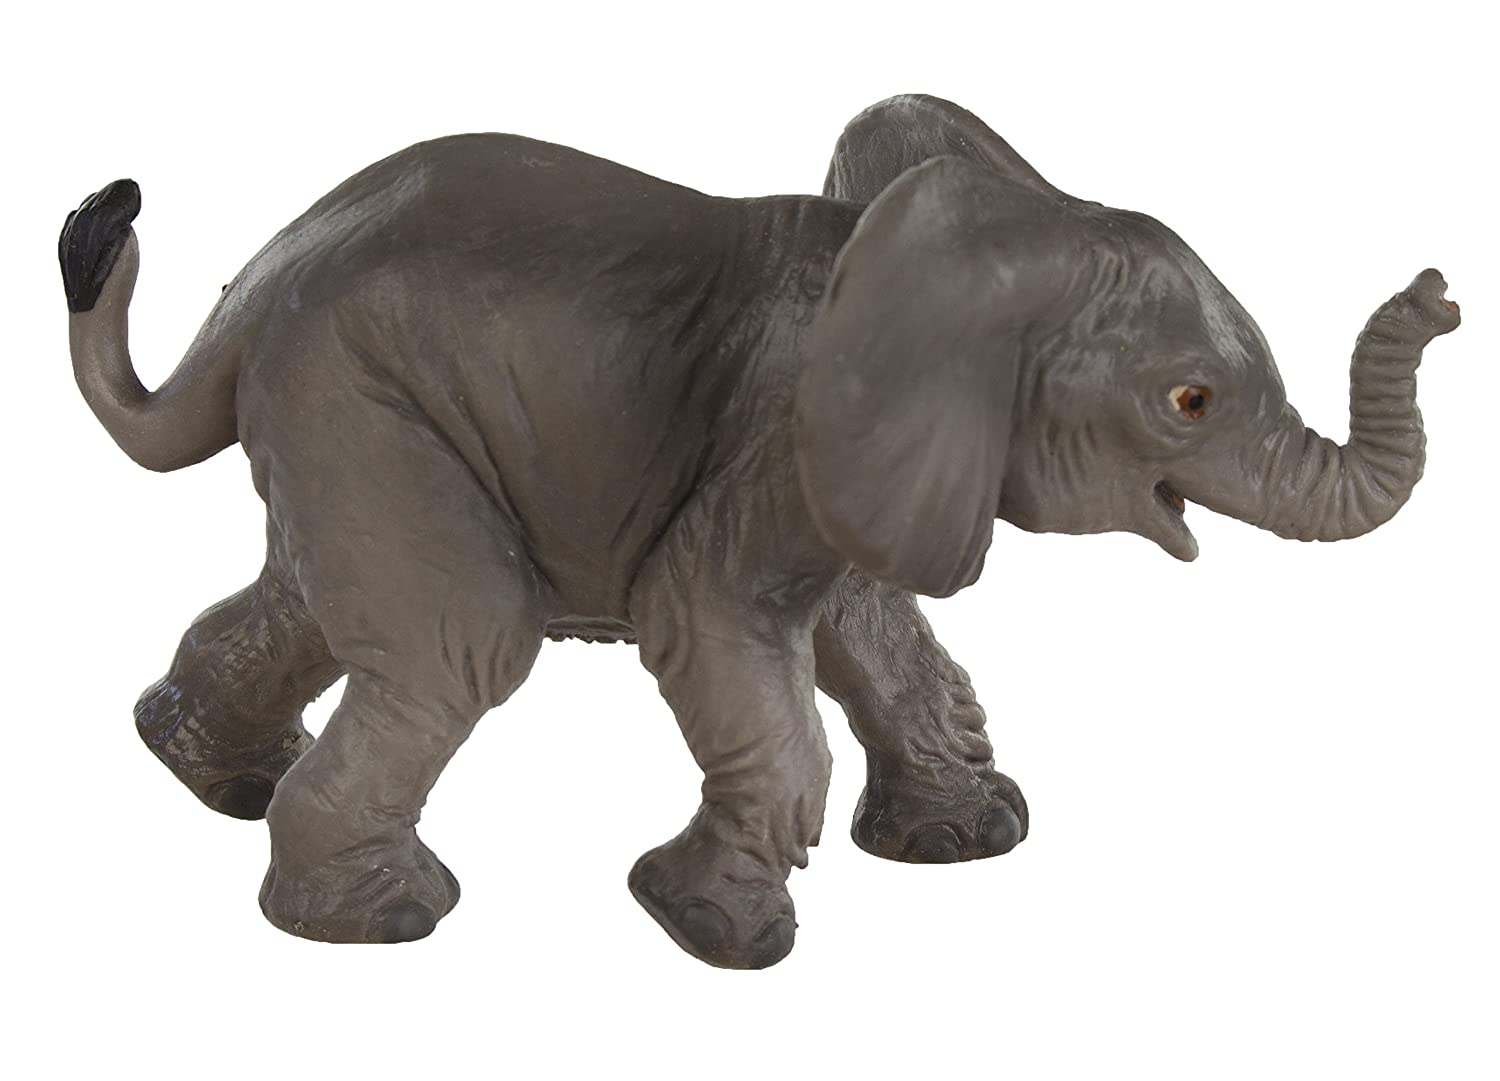 For Ages 3 and Up Quality Construction from Safe and BPA Free Materials Realistic Hand Painted Toy Figurine Model Safari Ltd Wild Safari Wildlife African Elephant Baby